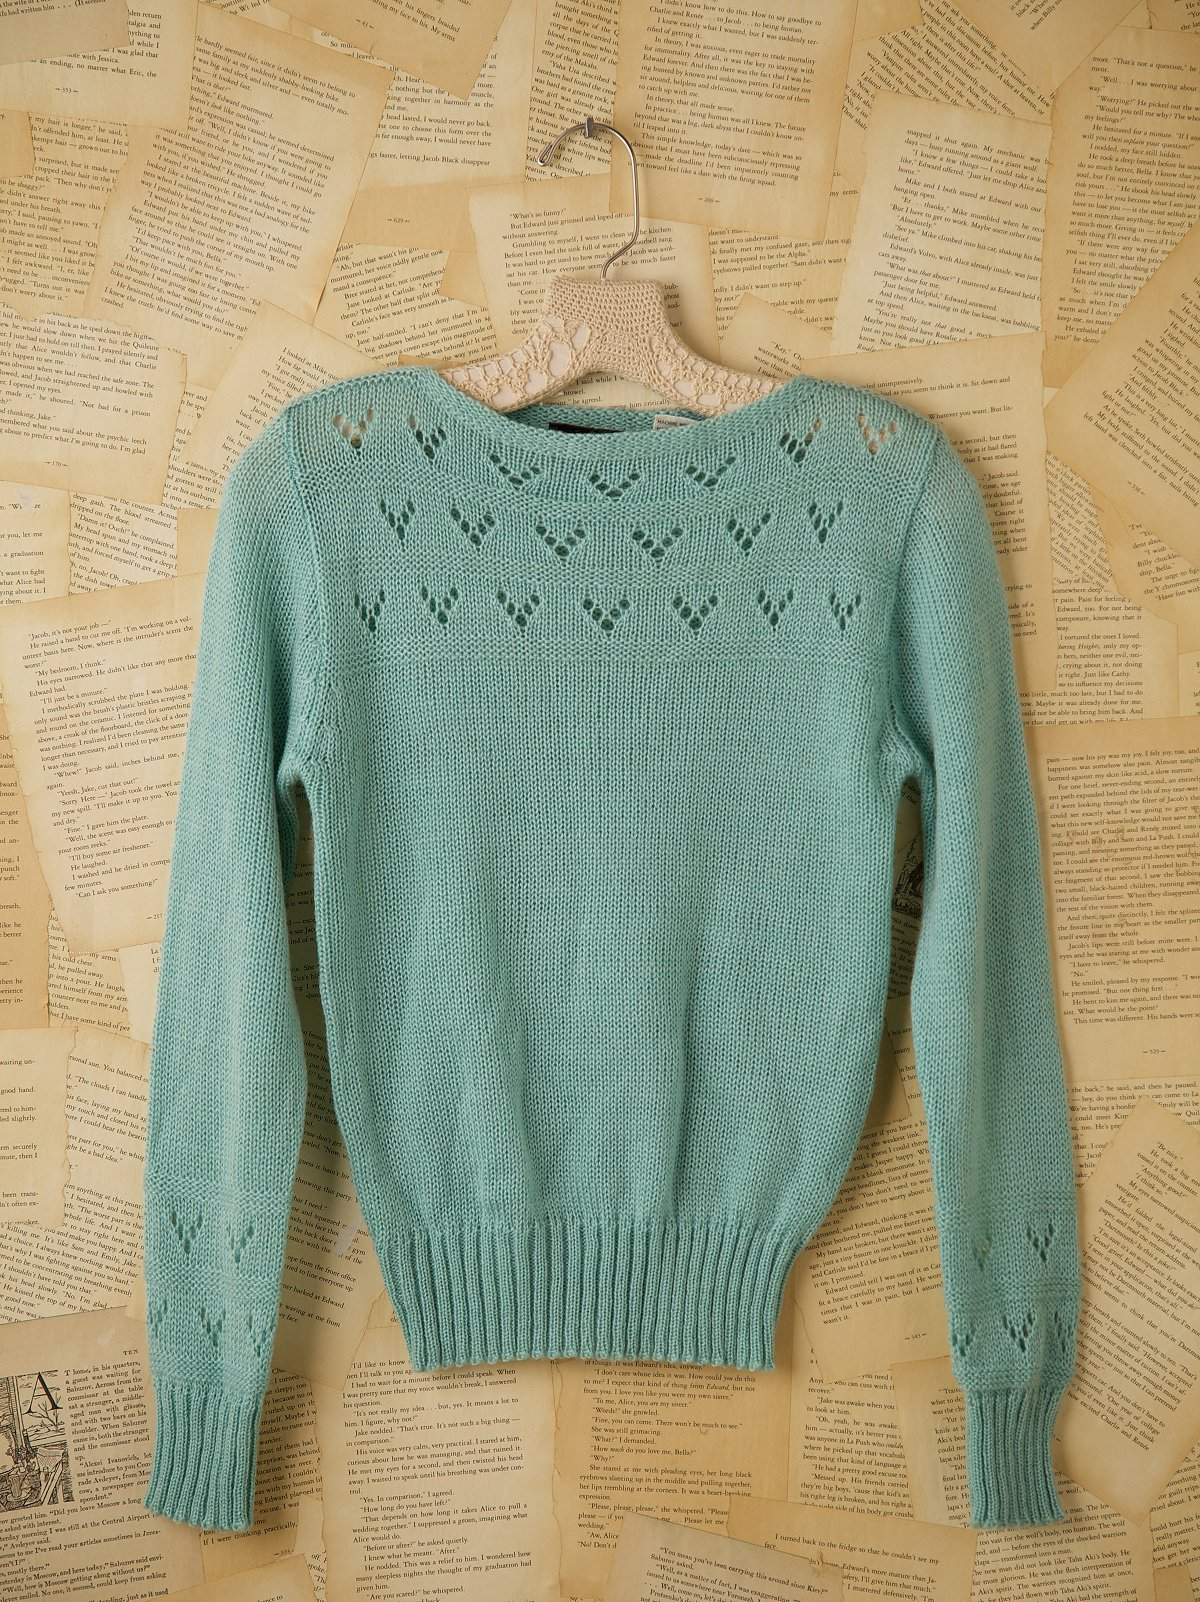 Vintage Tippy Tops 1970s Knit Sweater